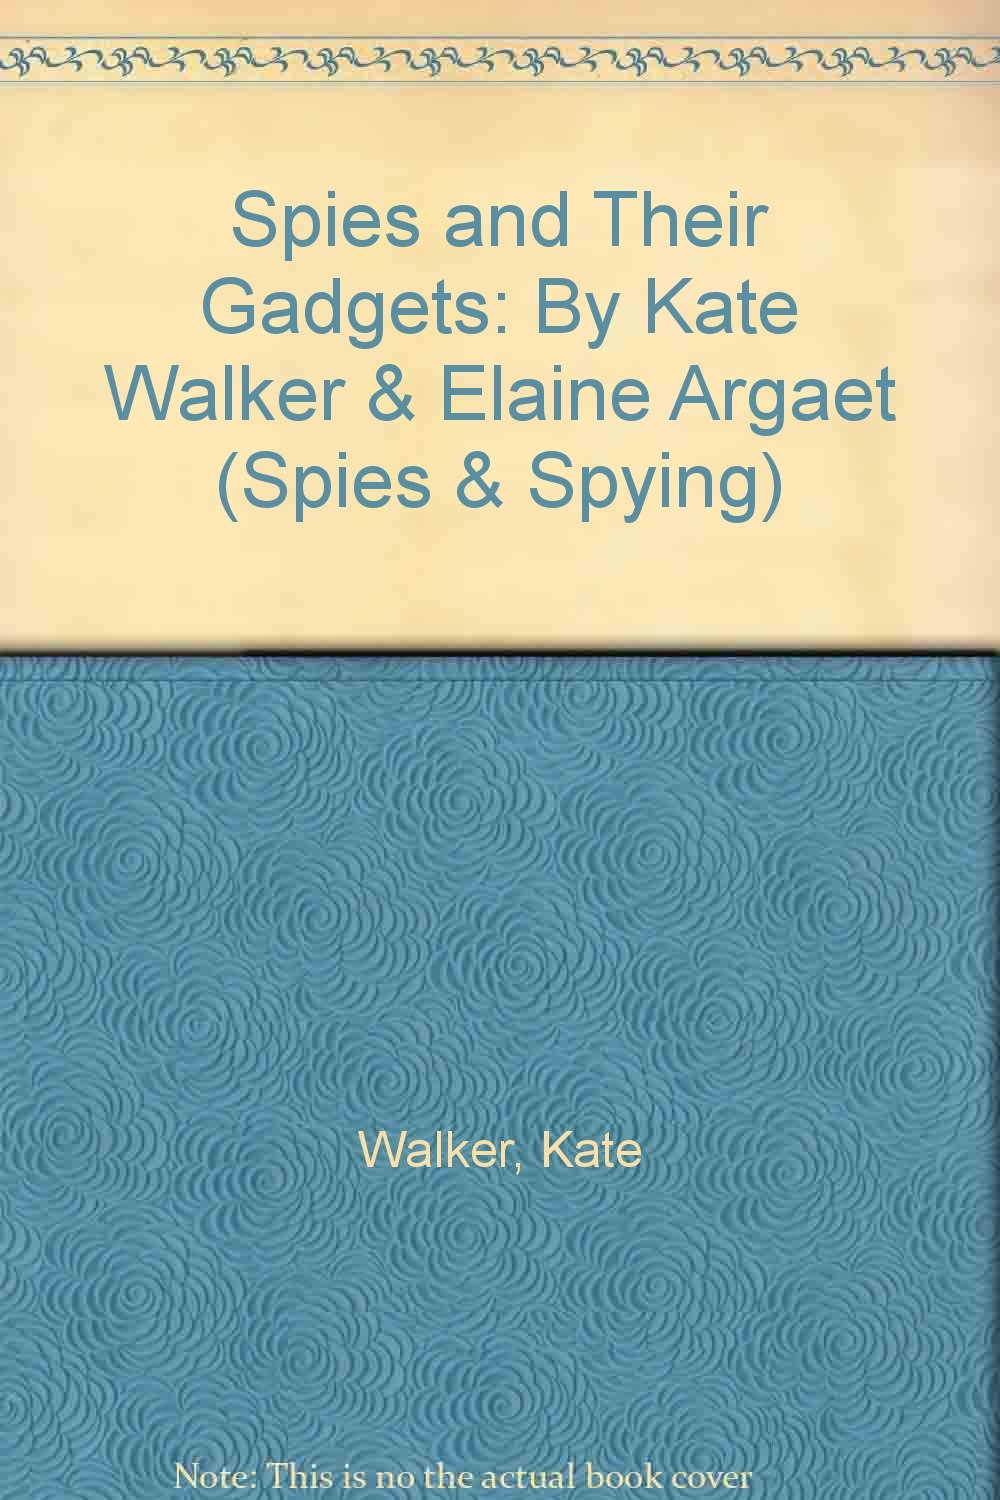 Spies and Their Gadgets: Kate Walker, Elaine Argaet (Spies and Spying)